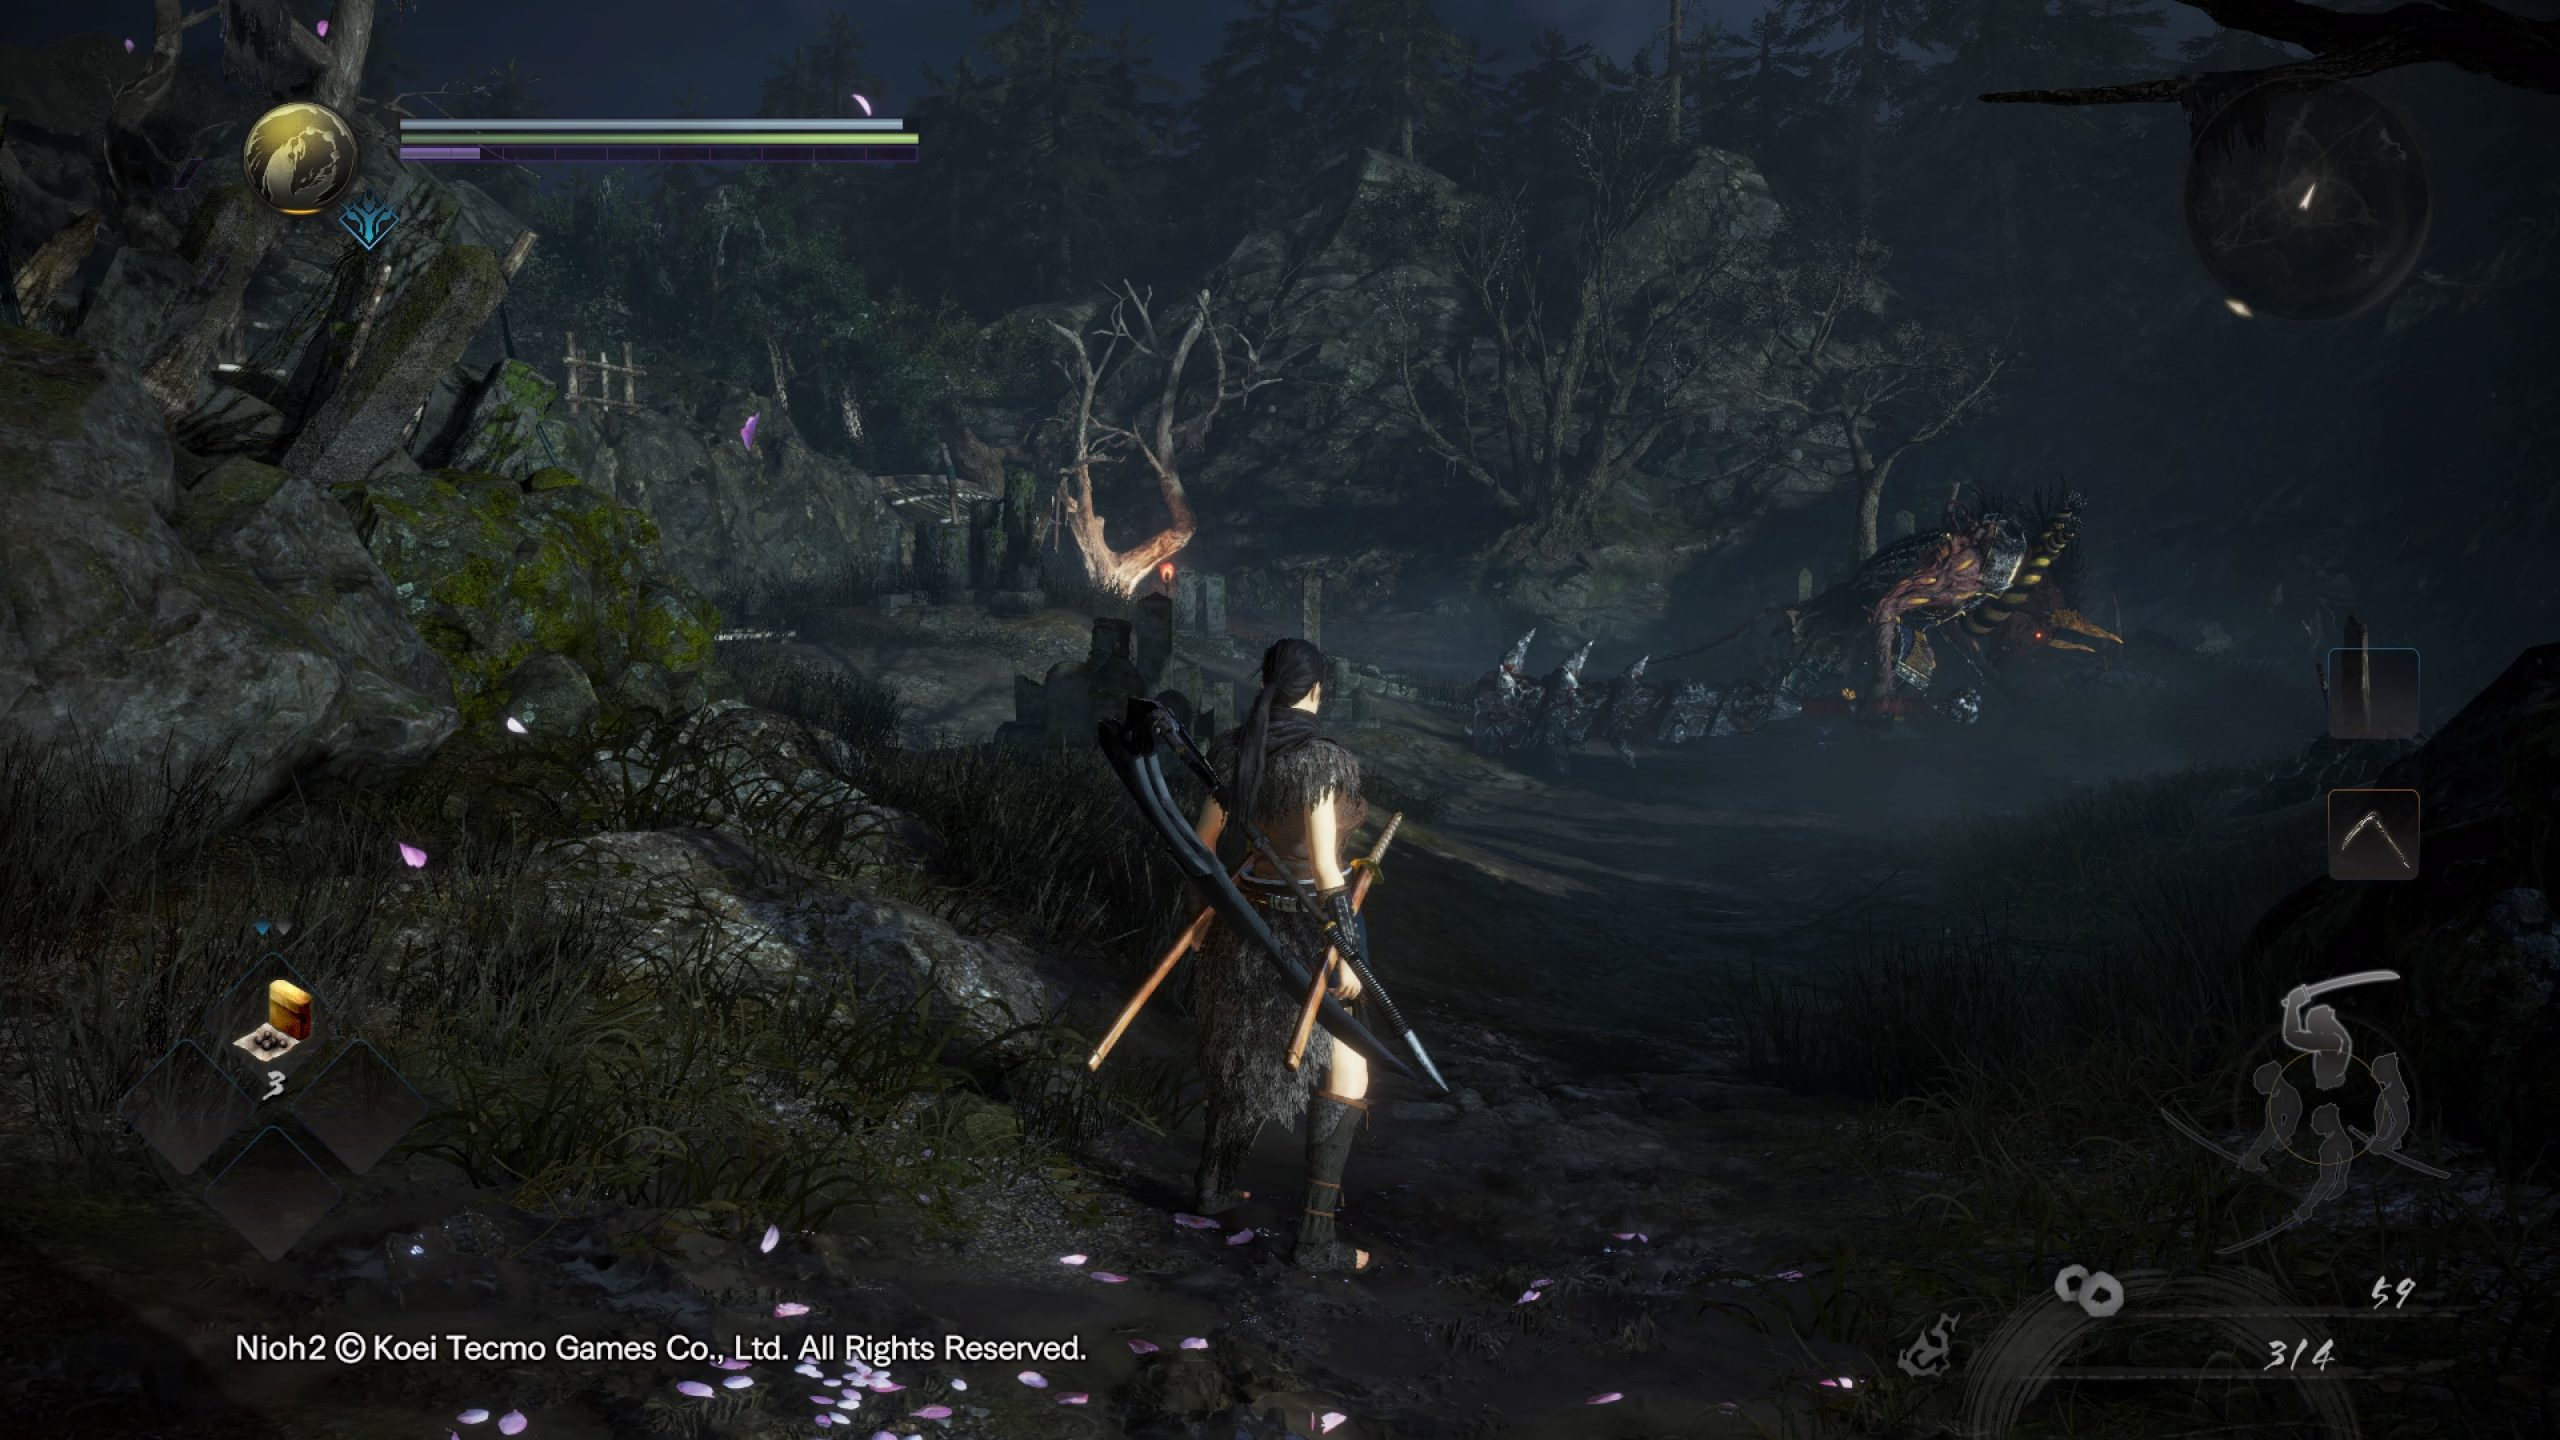 Nioh-2-Remastered-The-Complete-Edition_20210206161353-scaled Mon avis sur Nioh Collection